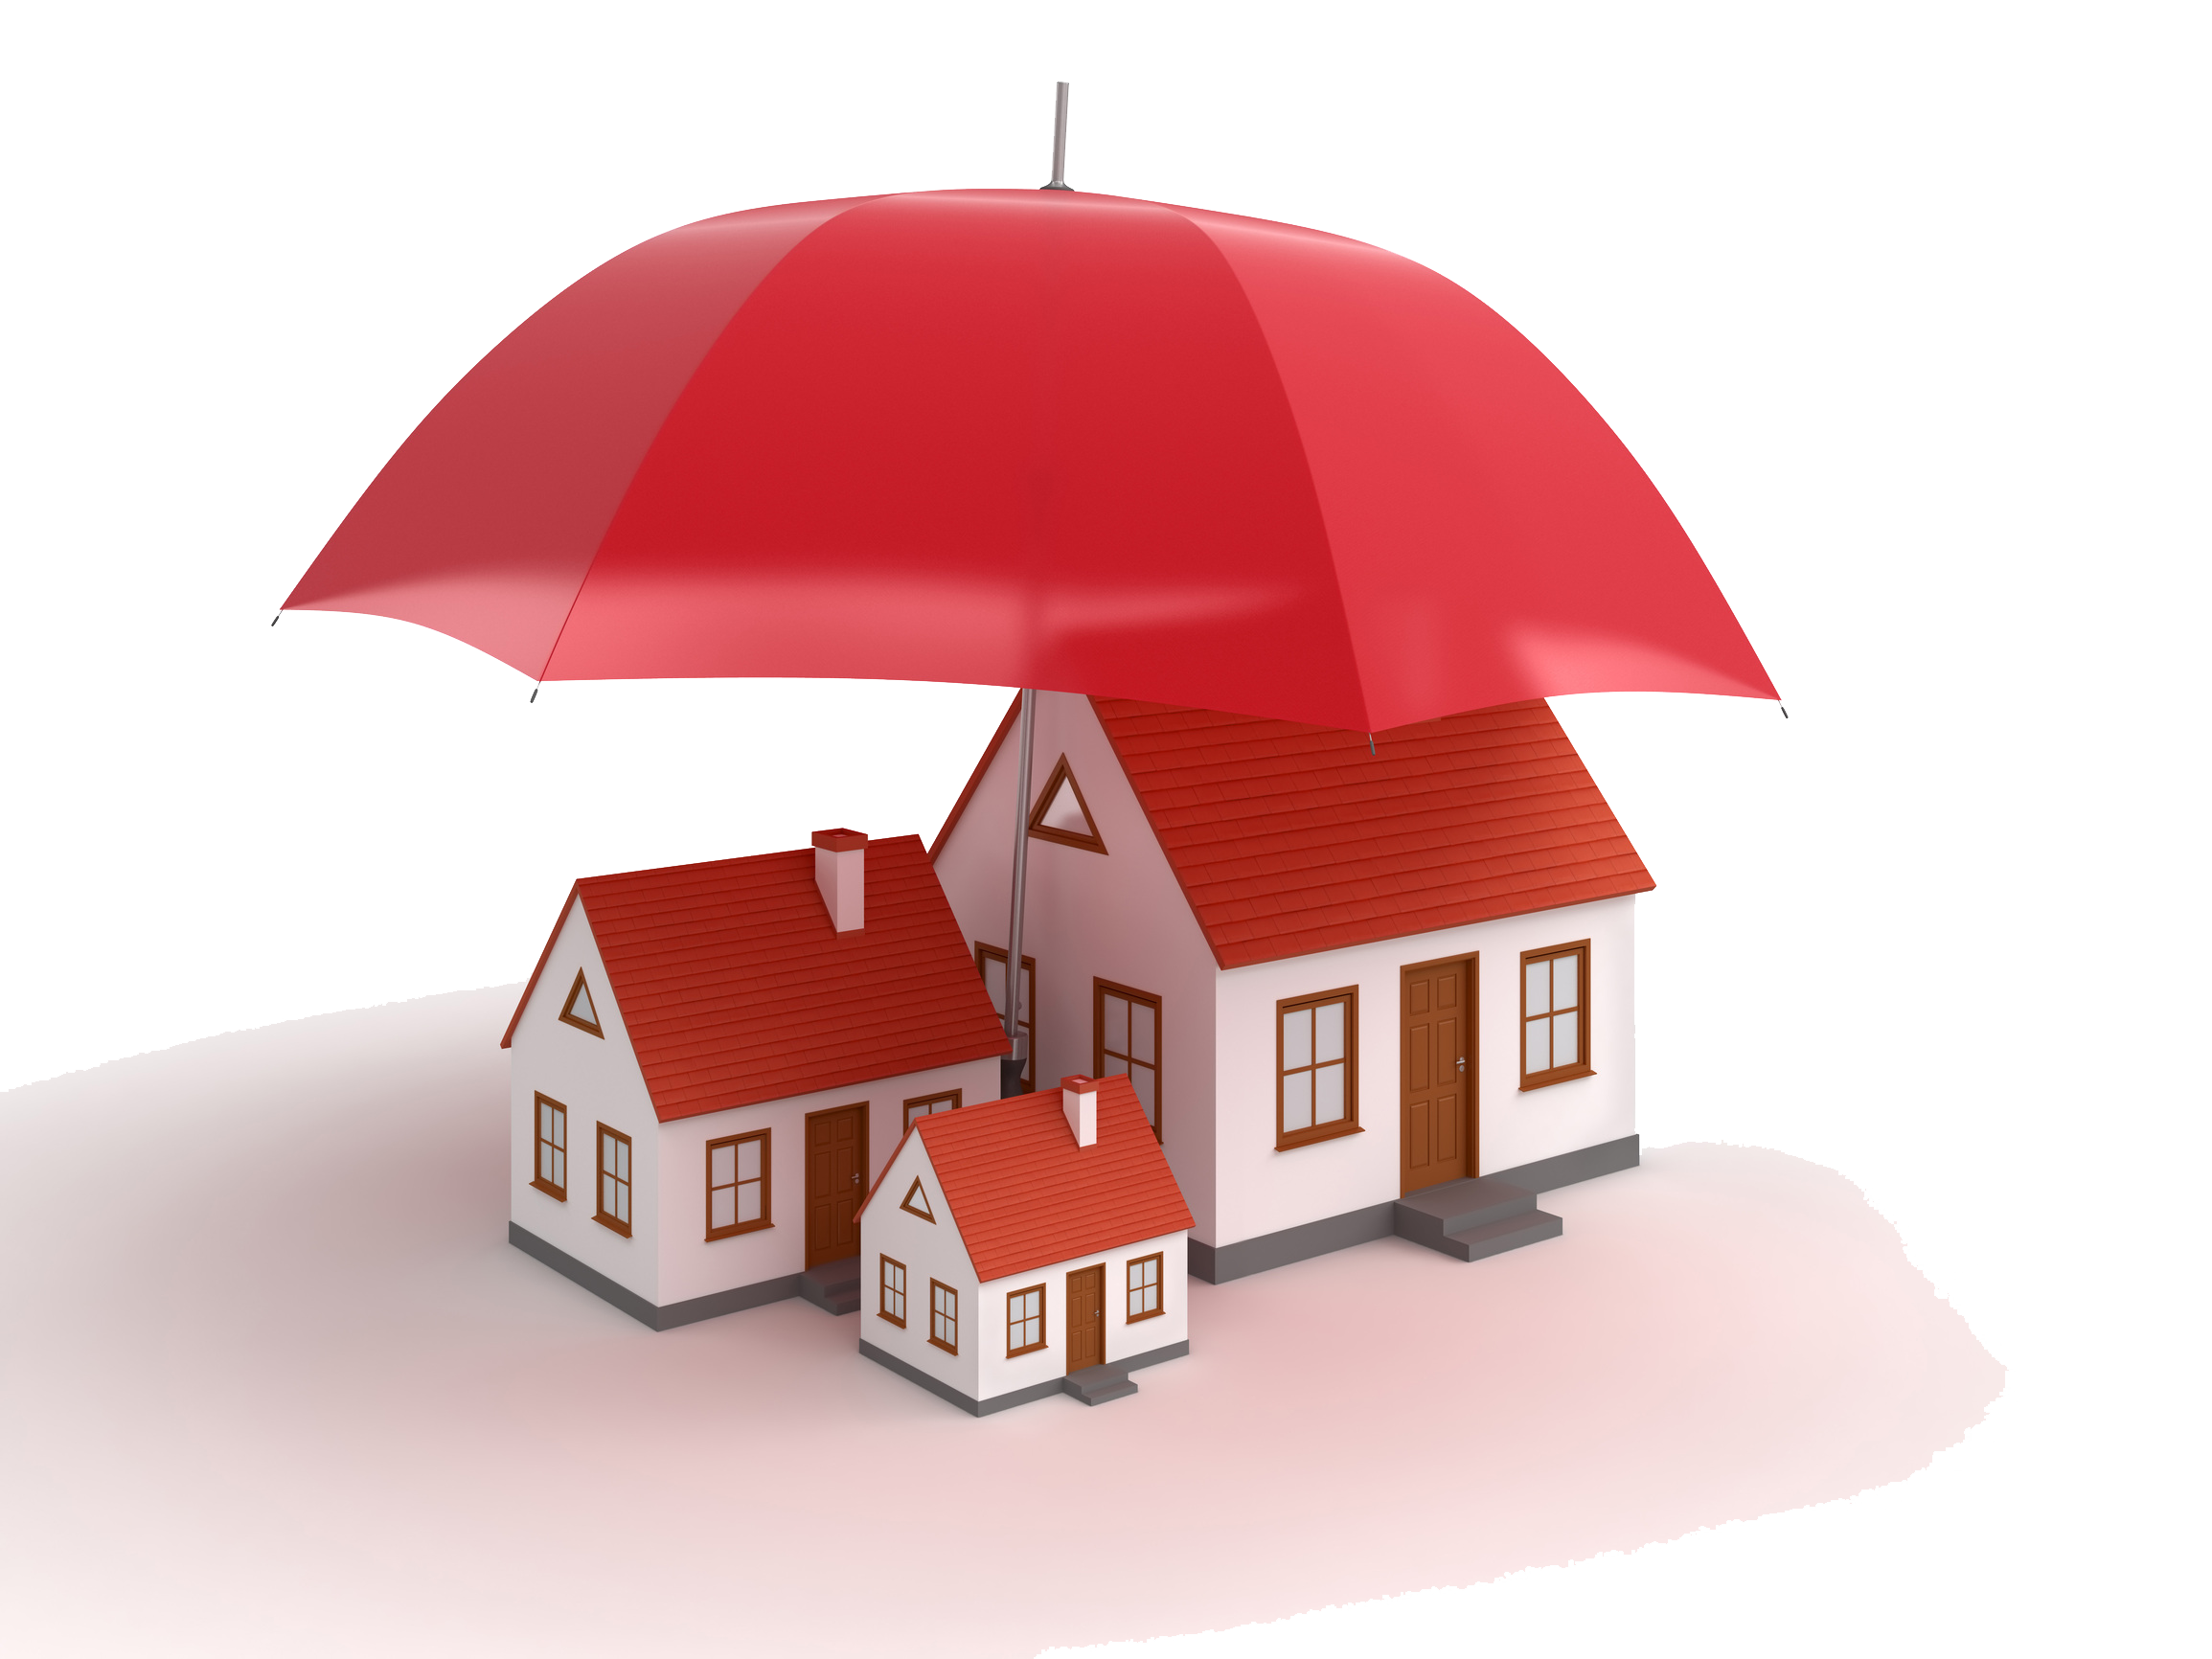 Types of cover morgan. Financial clipart property